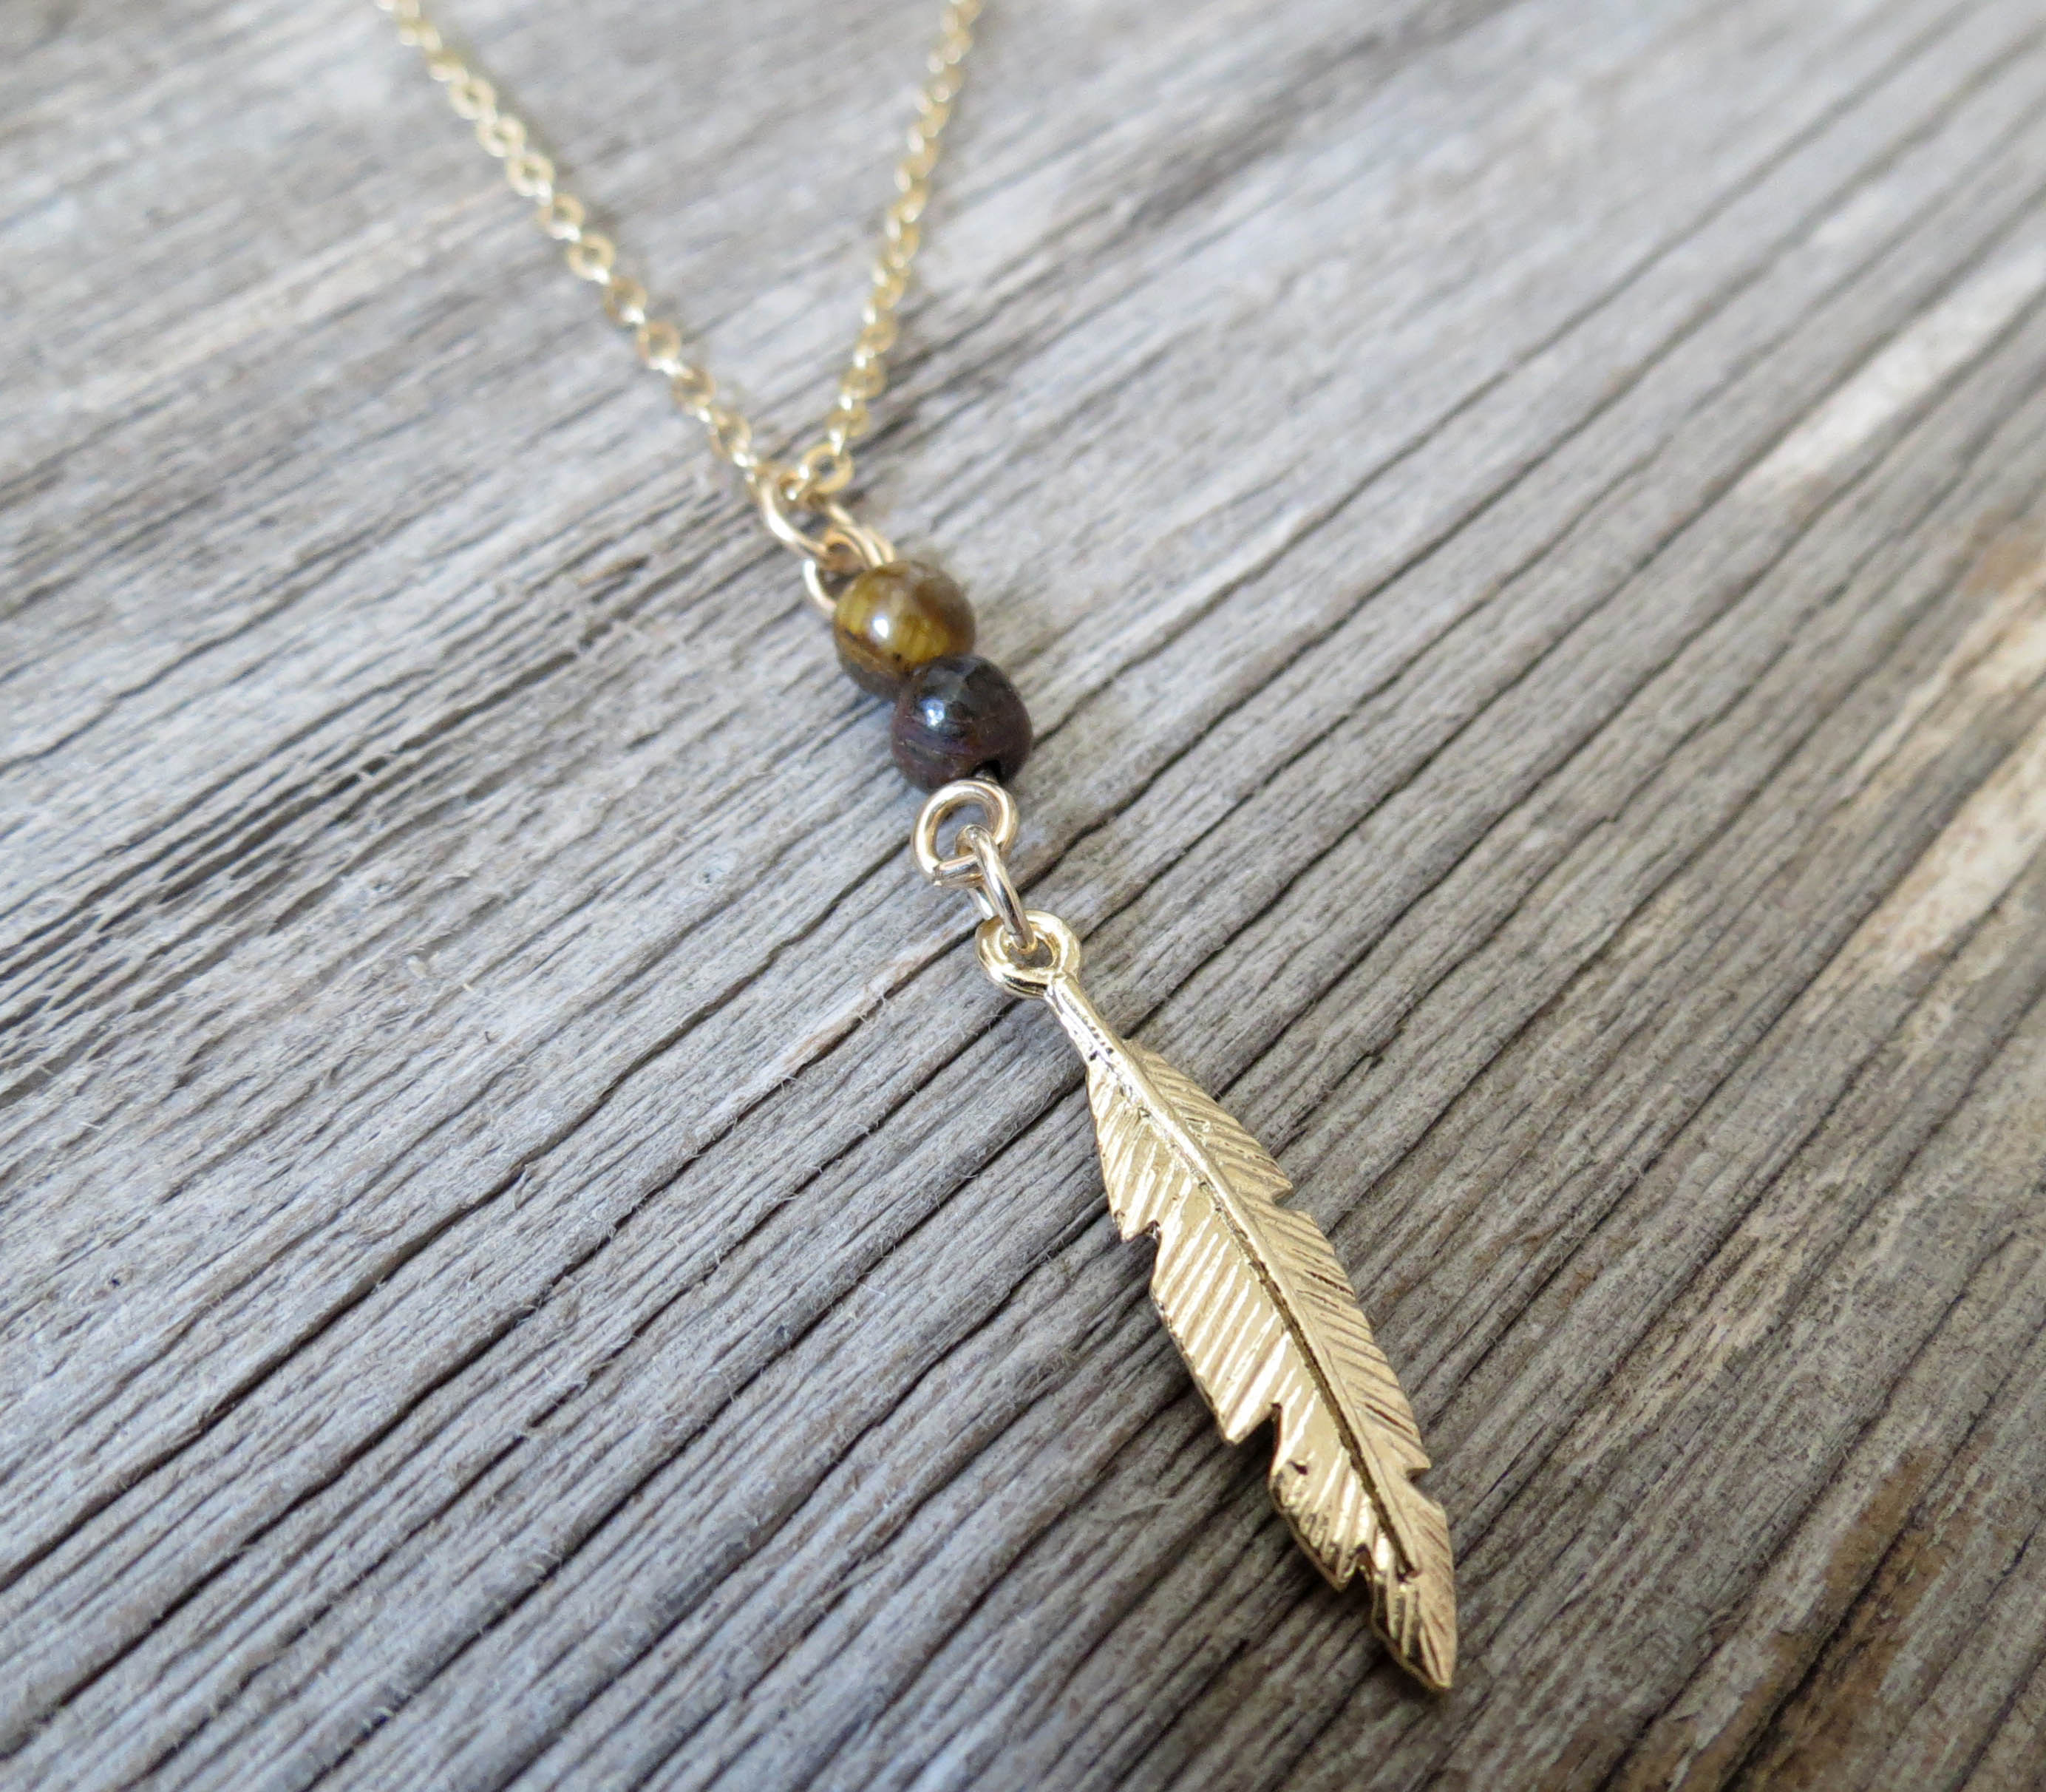 Mens necklace mens feather necklace mens gold necklace mens mens necklace mens feather necklace mens gold necklace mens jewelry necklaces for men jewelry for men gift for him aloadofball